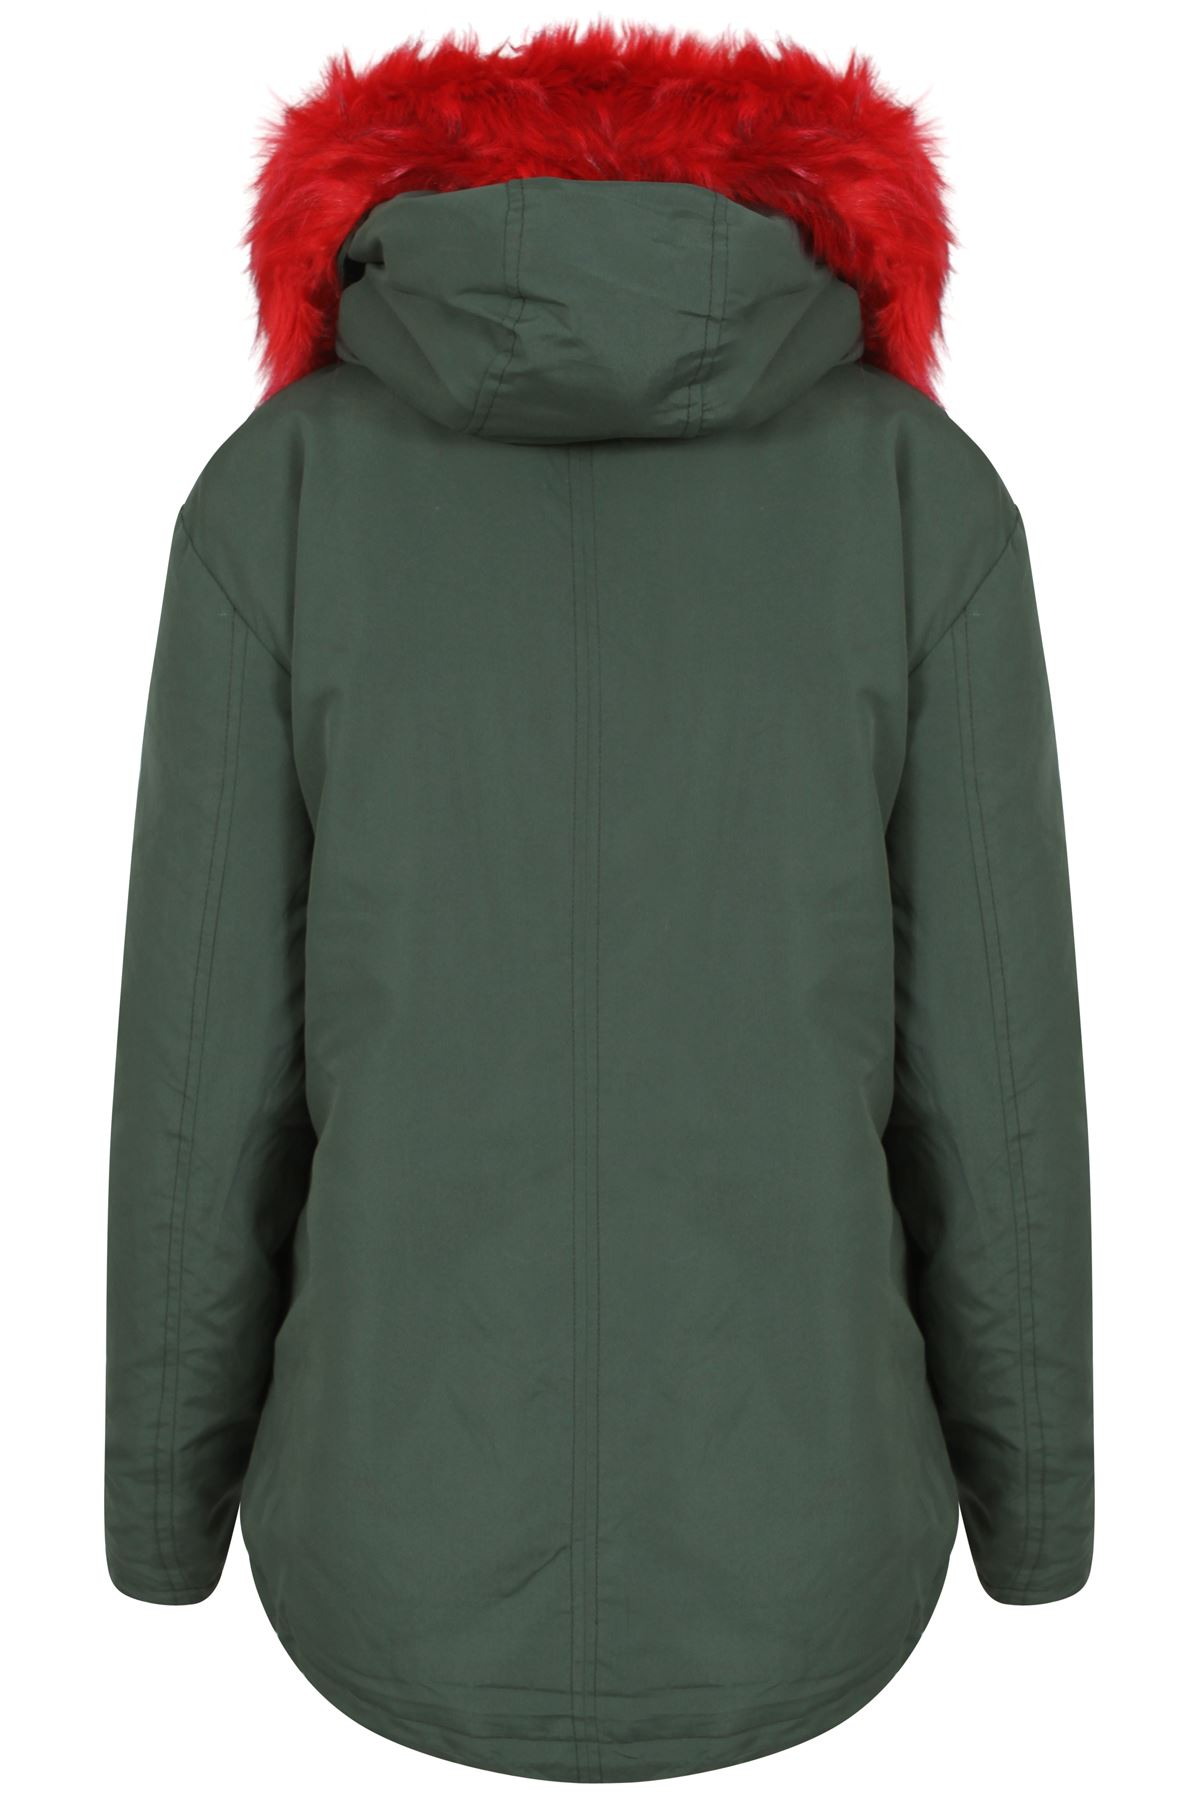 Womens-Padded-Lined-Parka-Red-Faux-Fur-Trim-Hooded-Thick-Warm-Winter-Jacket-Coat thumbnail 5